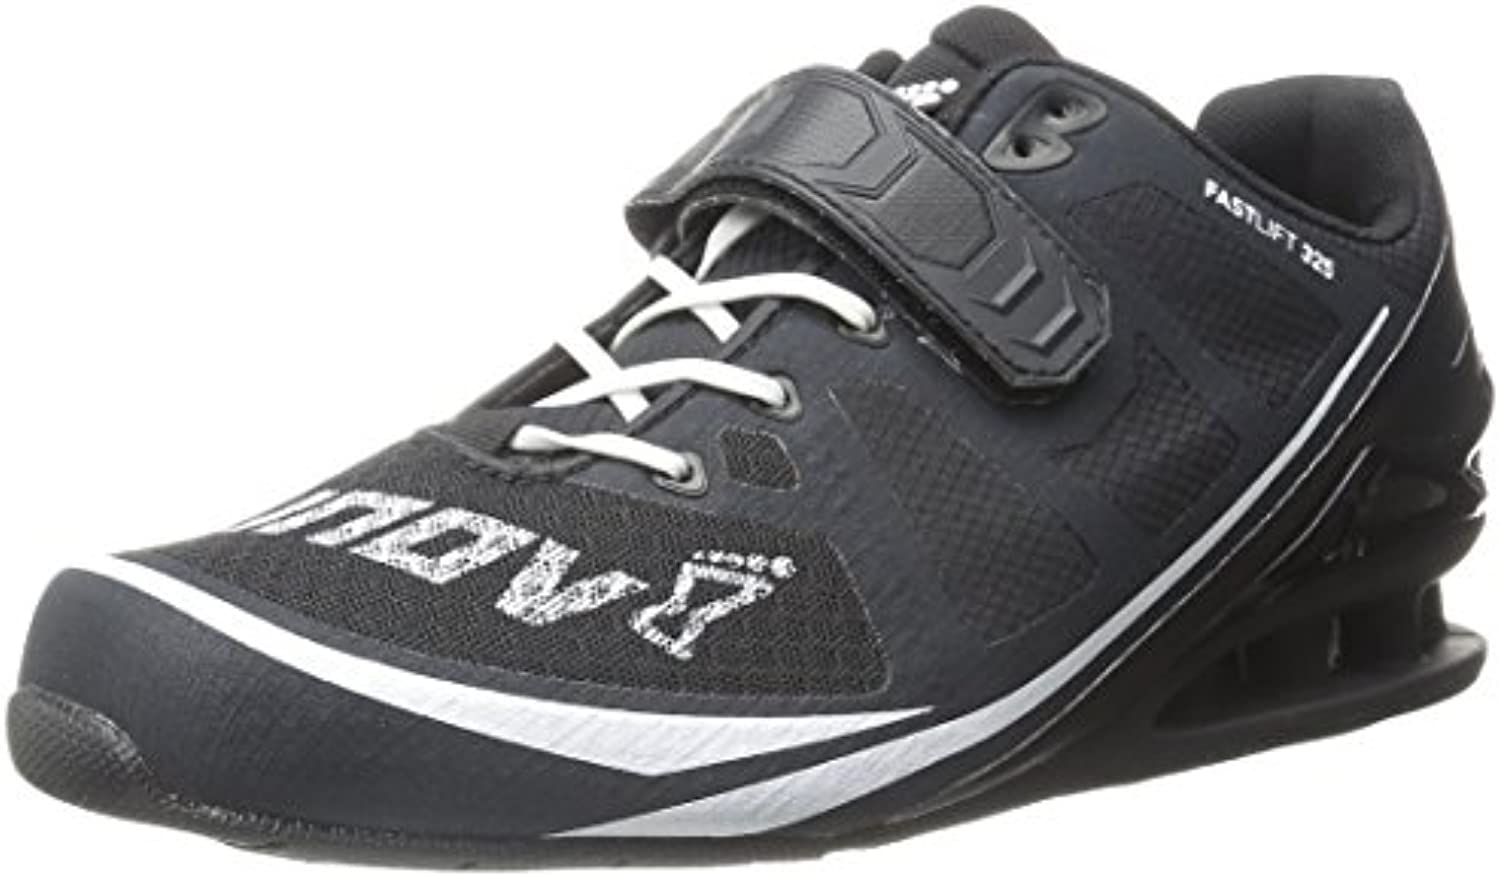 Inov8 Fastlift 325 325 Fastlift Women's Weightlifting Chaussure - AW16 ccd833